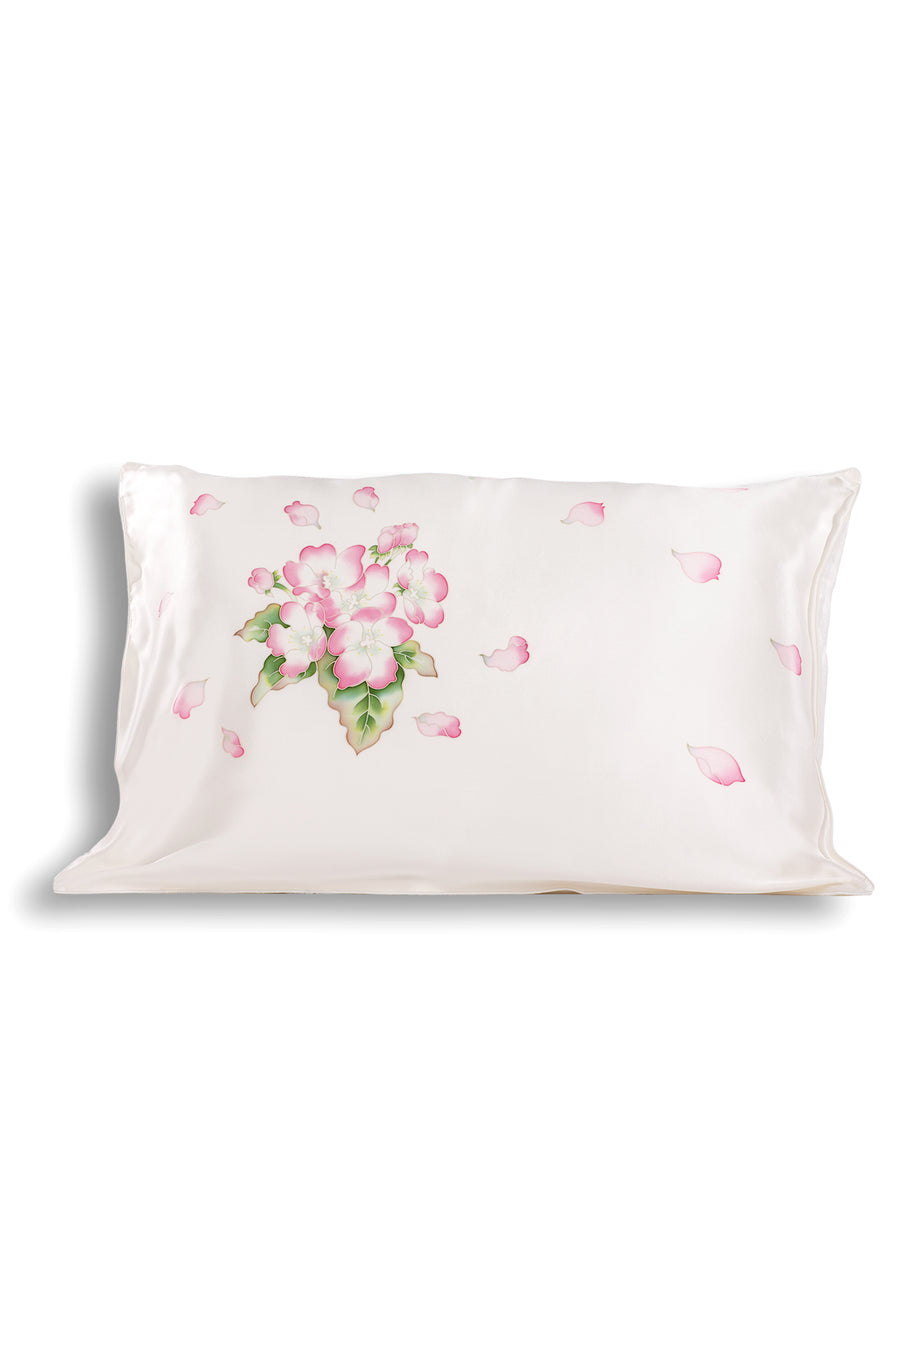 Hand Painted Silk Pillowcases - TexereSilk